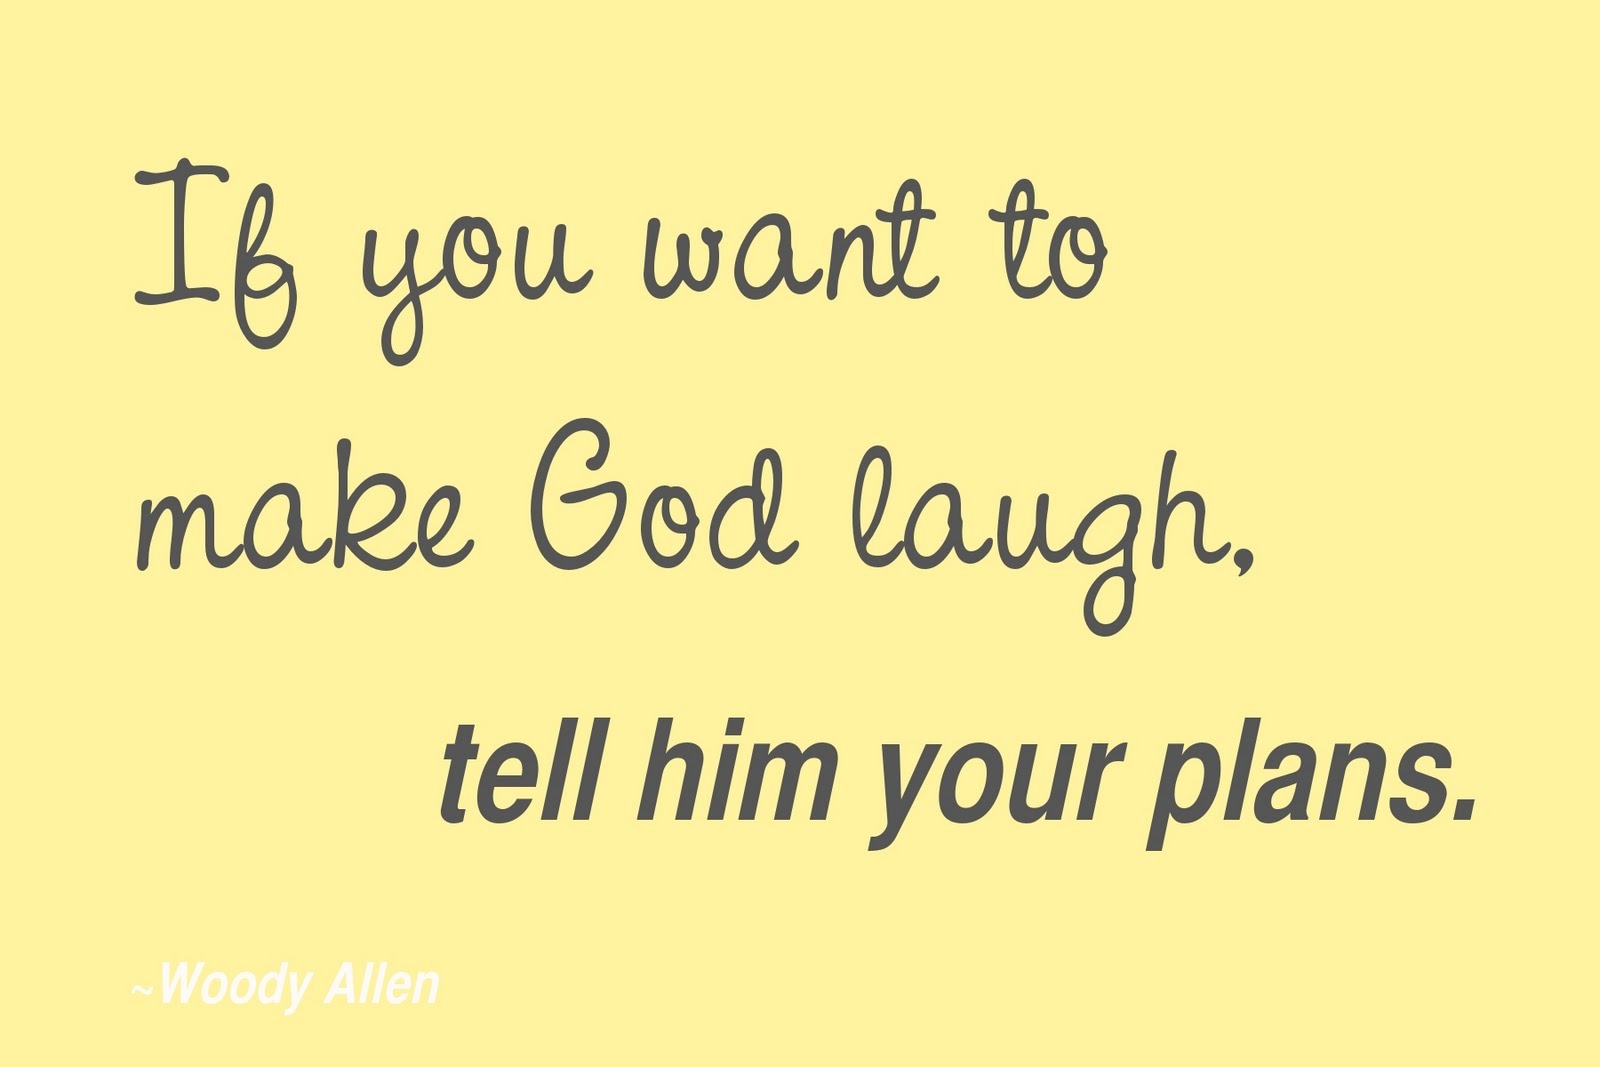 Quotes For Laughs: And Spiritually Speaking: How To Make God Laugh